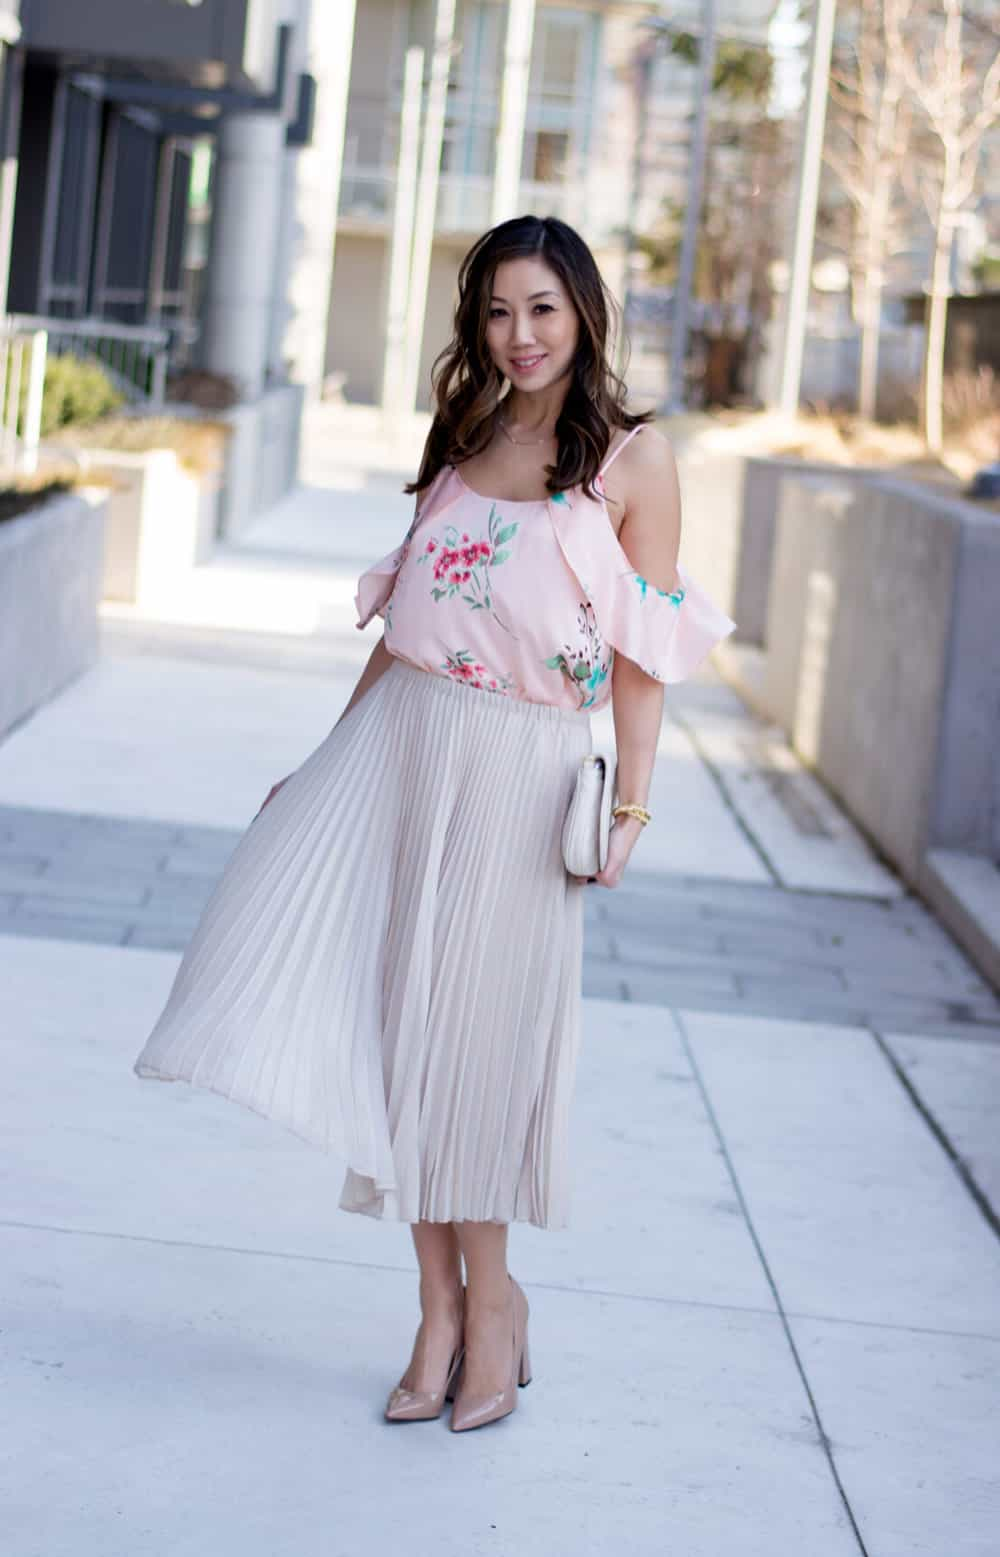 Summer Streetstyle: Pretty pleated skirt and floral print top from LC Lauren Conrad Dress Up Shop. Special occasion dressing like wedding guests, showers, birthday parties, engagement parties etc.